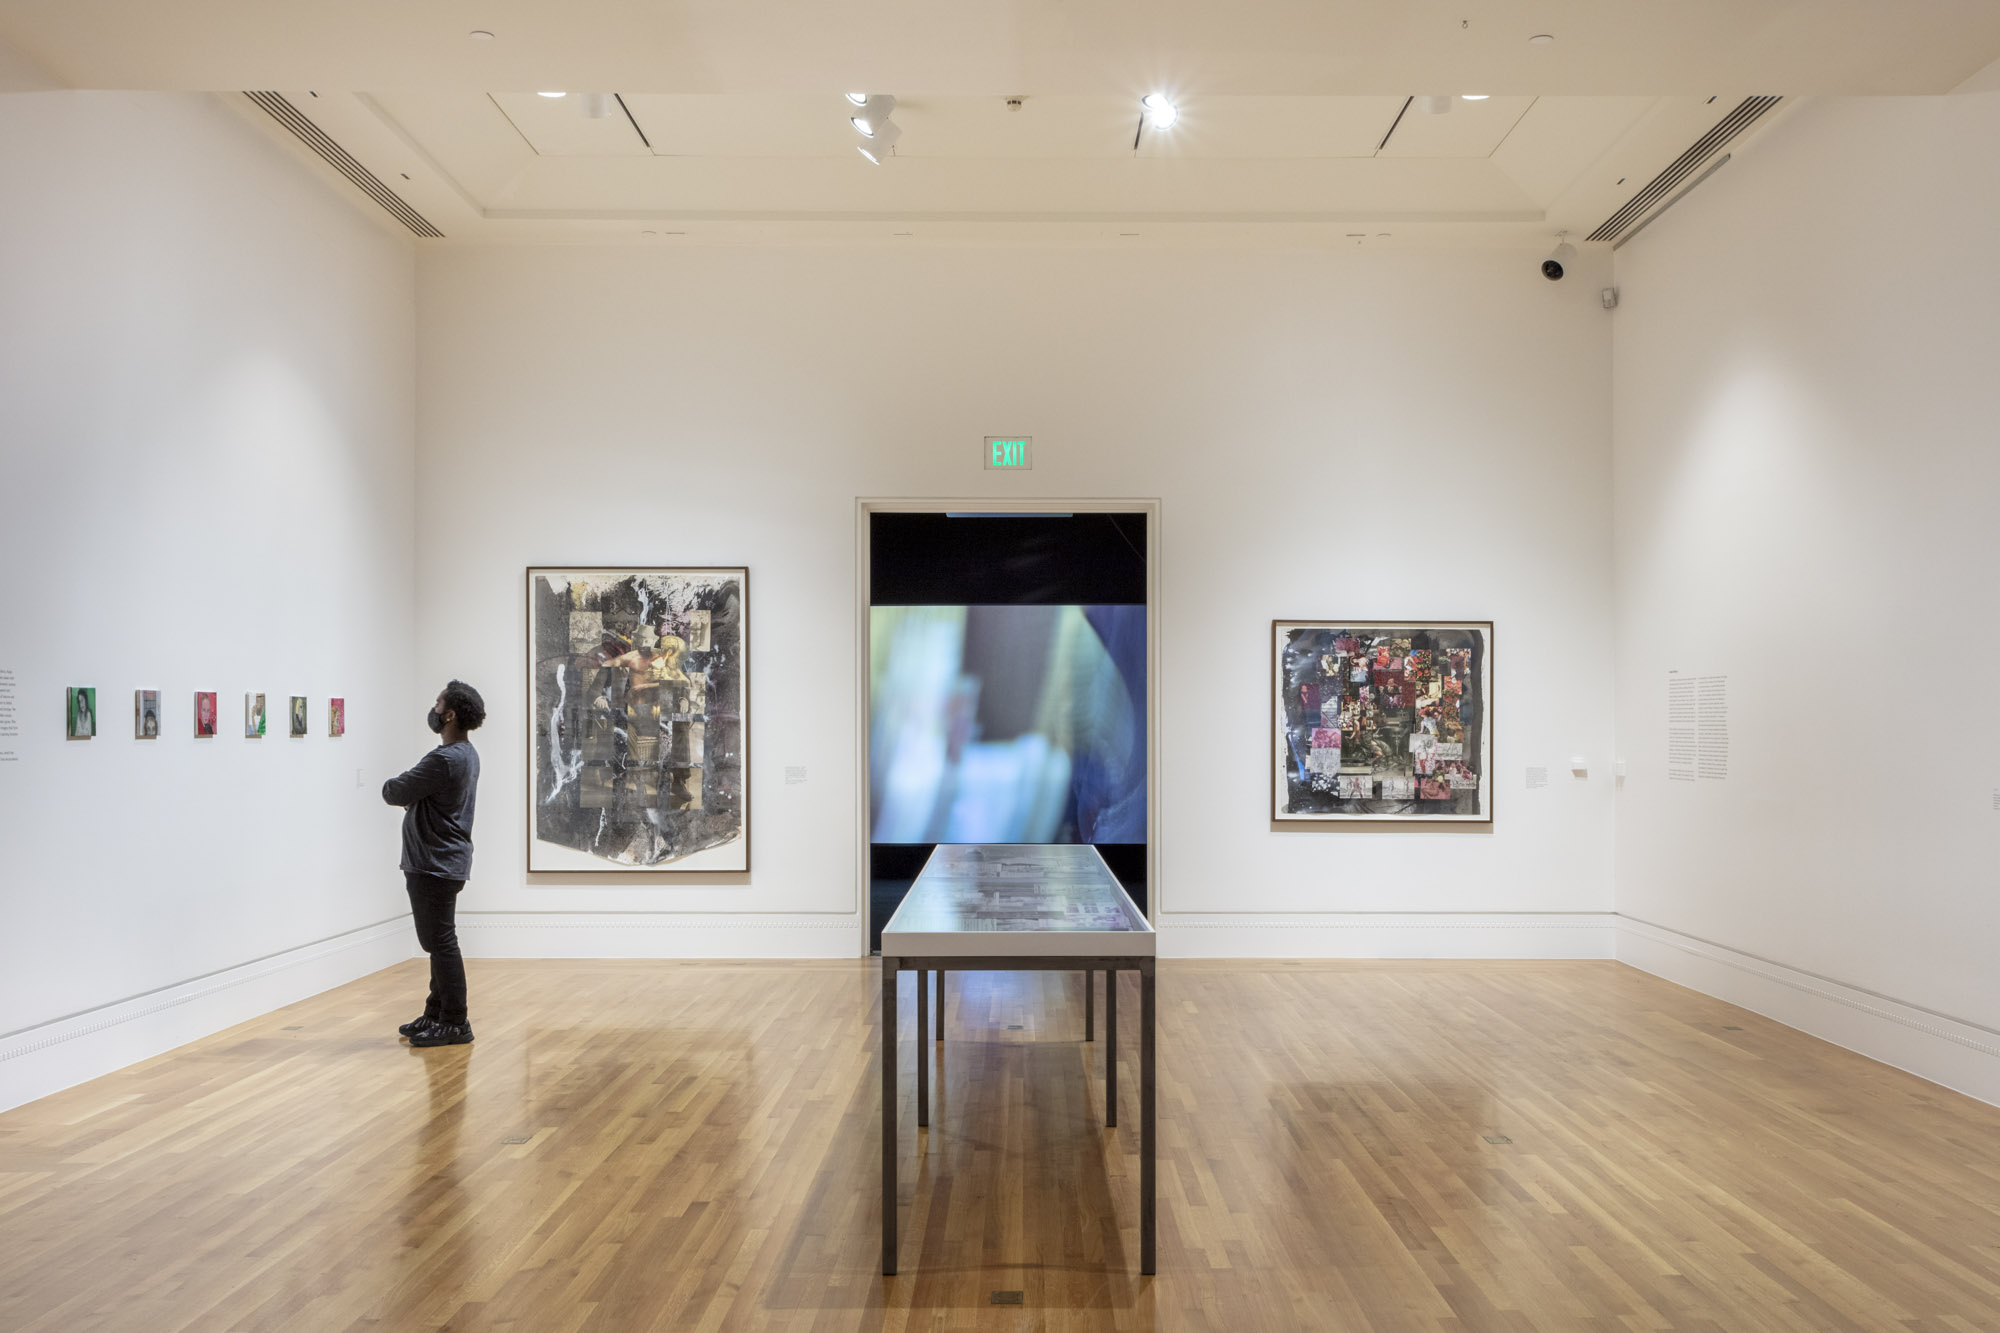 """An installation view of Katja Seib's work at """"Made in L.A. 2020: a version"""" at The Huntington Library, Art Museum, and Botanical Gardens, San Marino. 